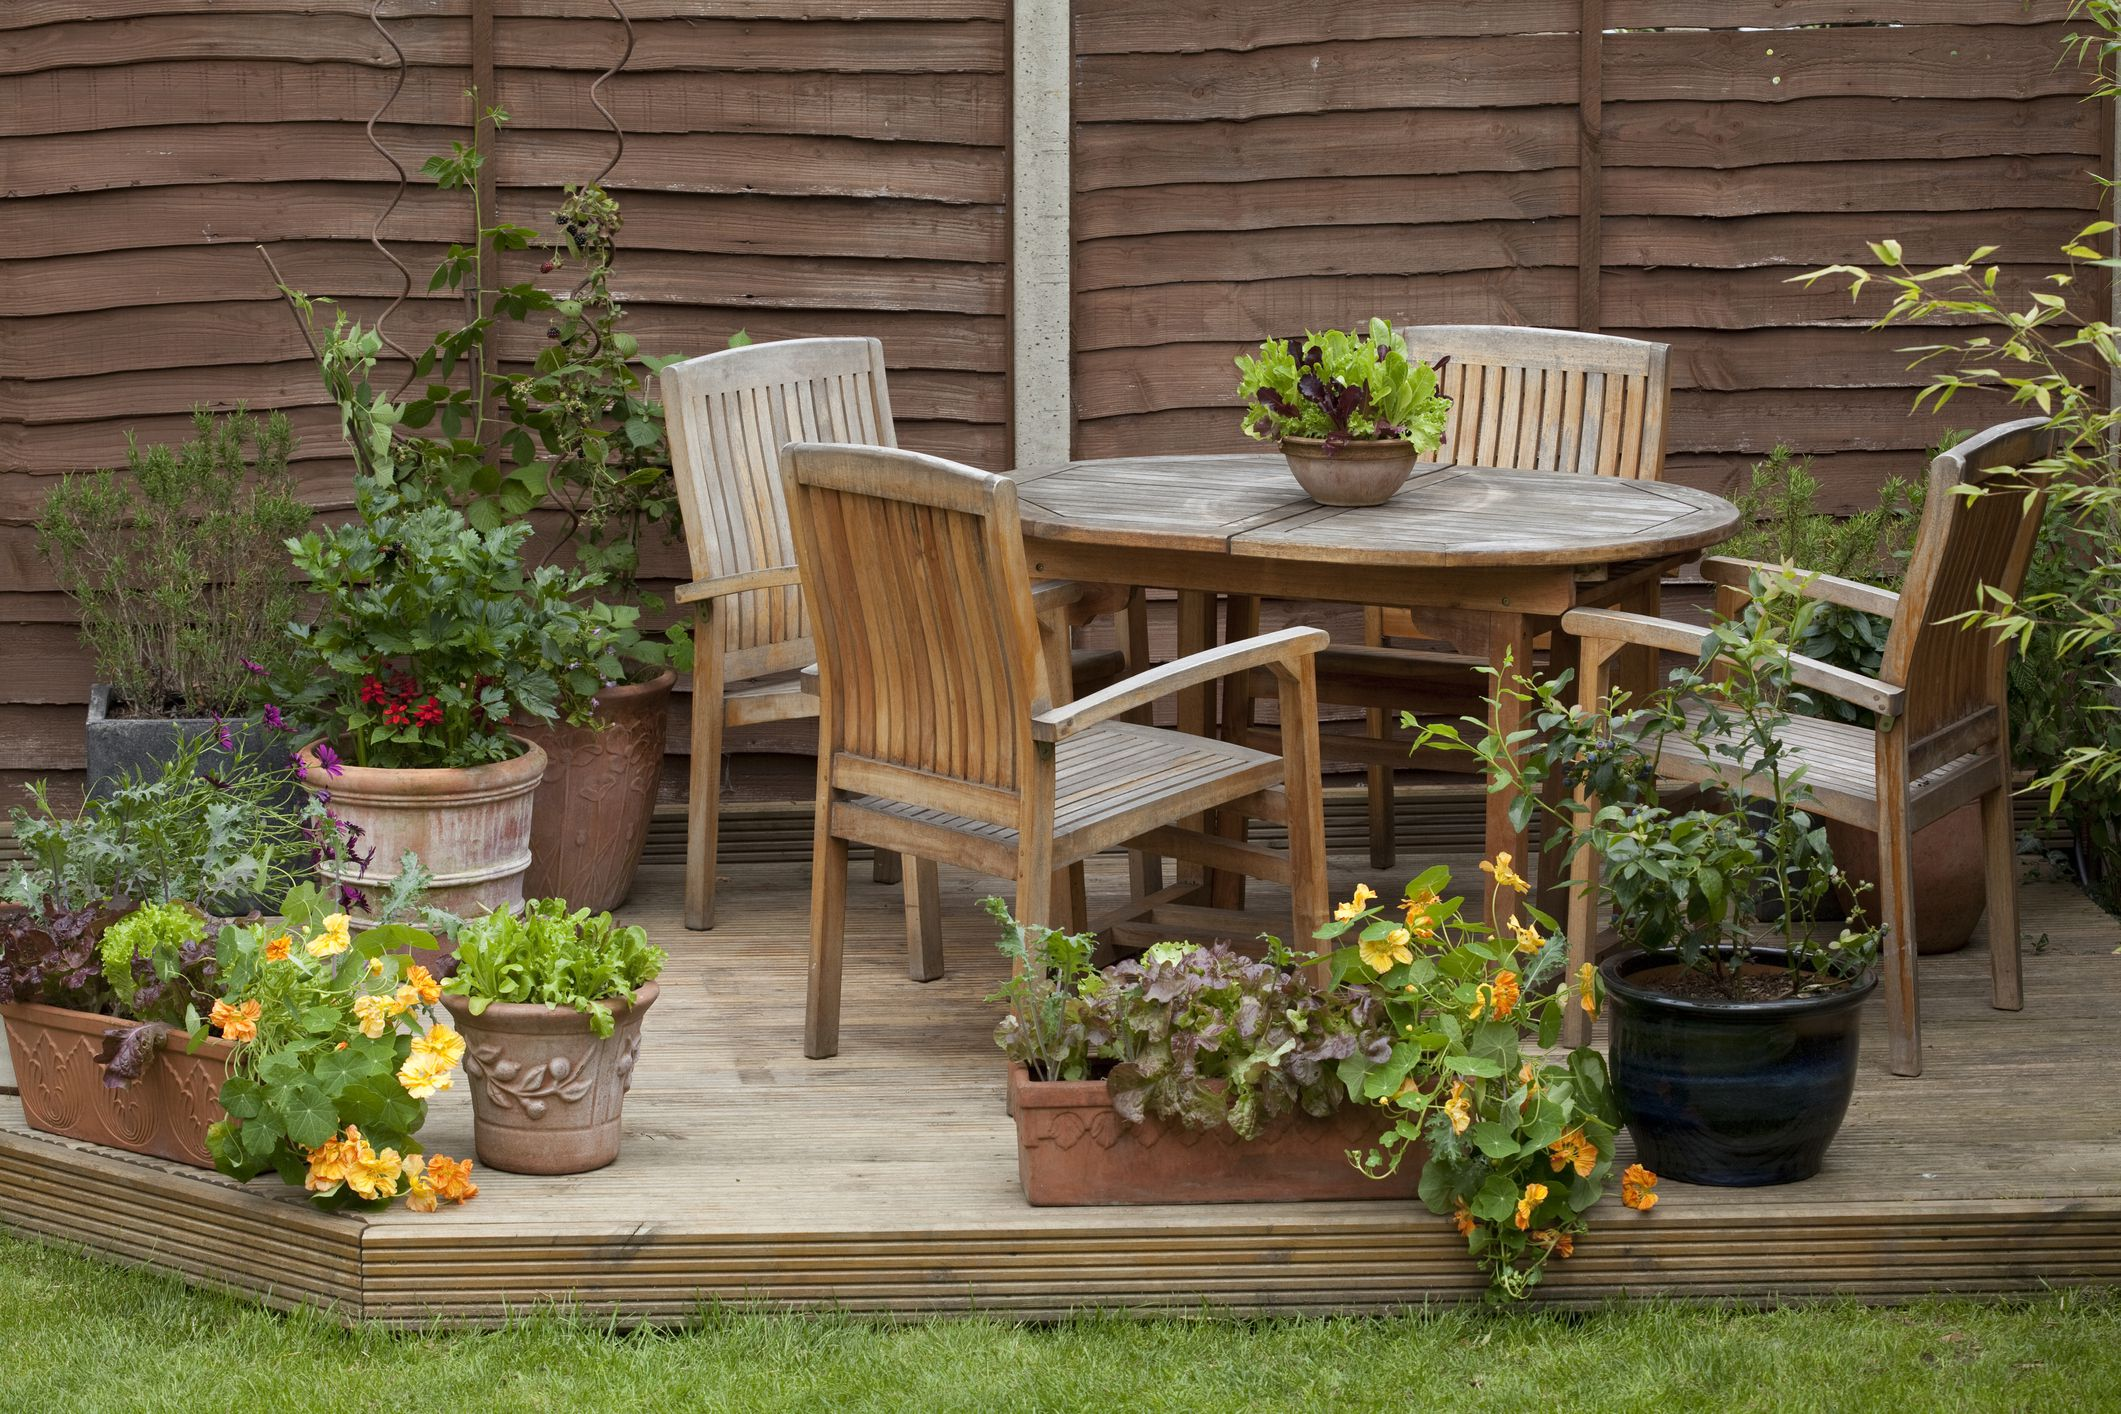 50 backyard ideas to inspire and delight diy u0027ers